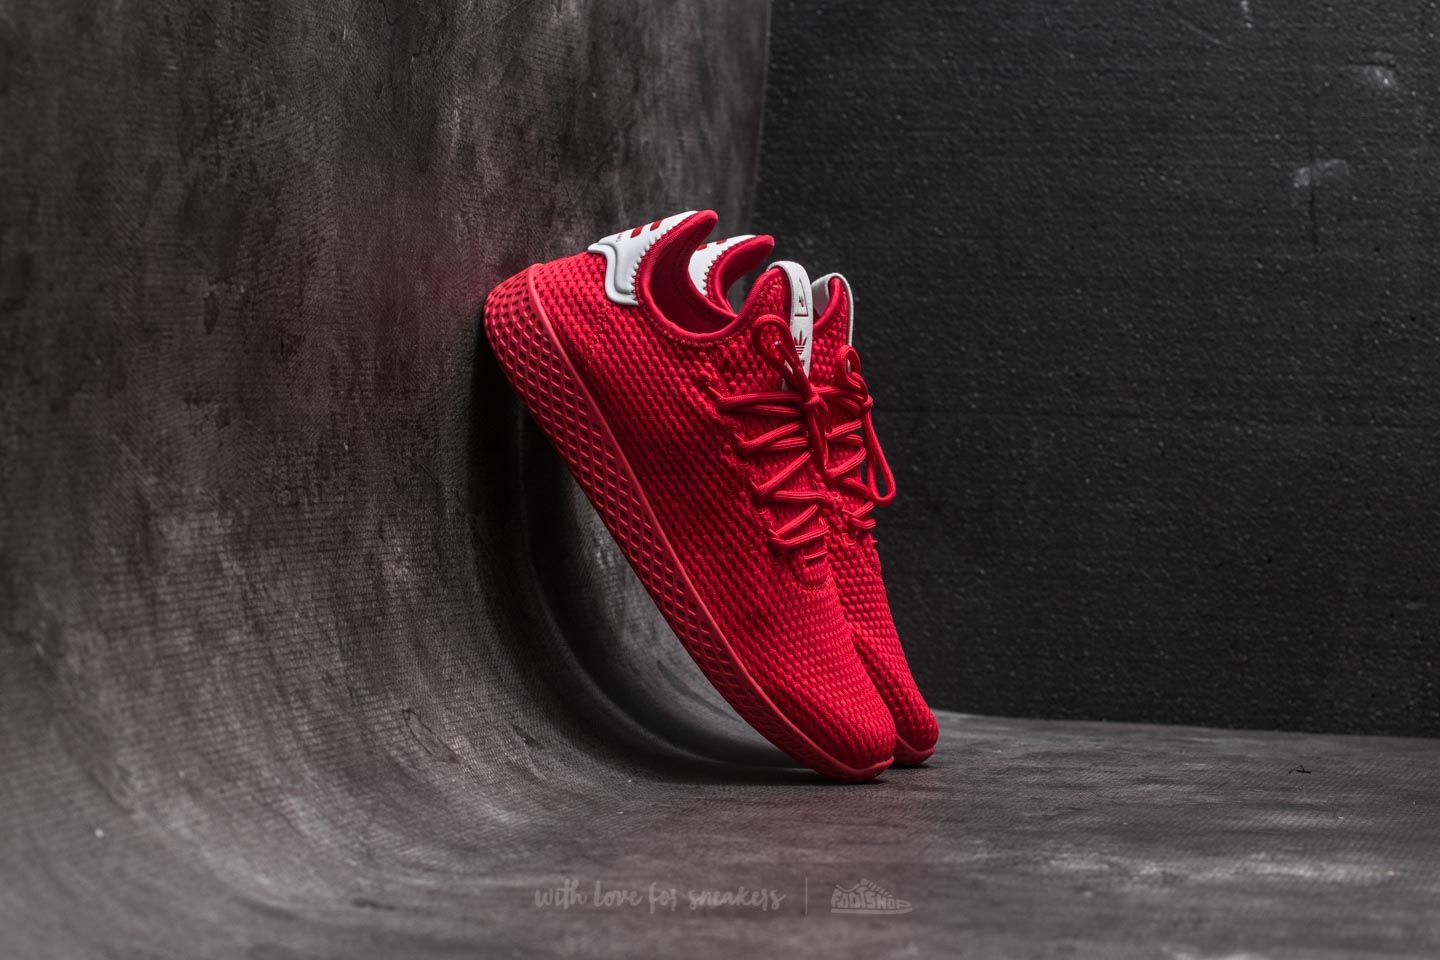 c9e87a78040c1 adidas Pharrell Williams Tennis HU Scarlet  Scarlet  Ftw White ...